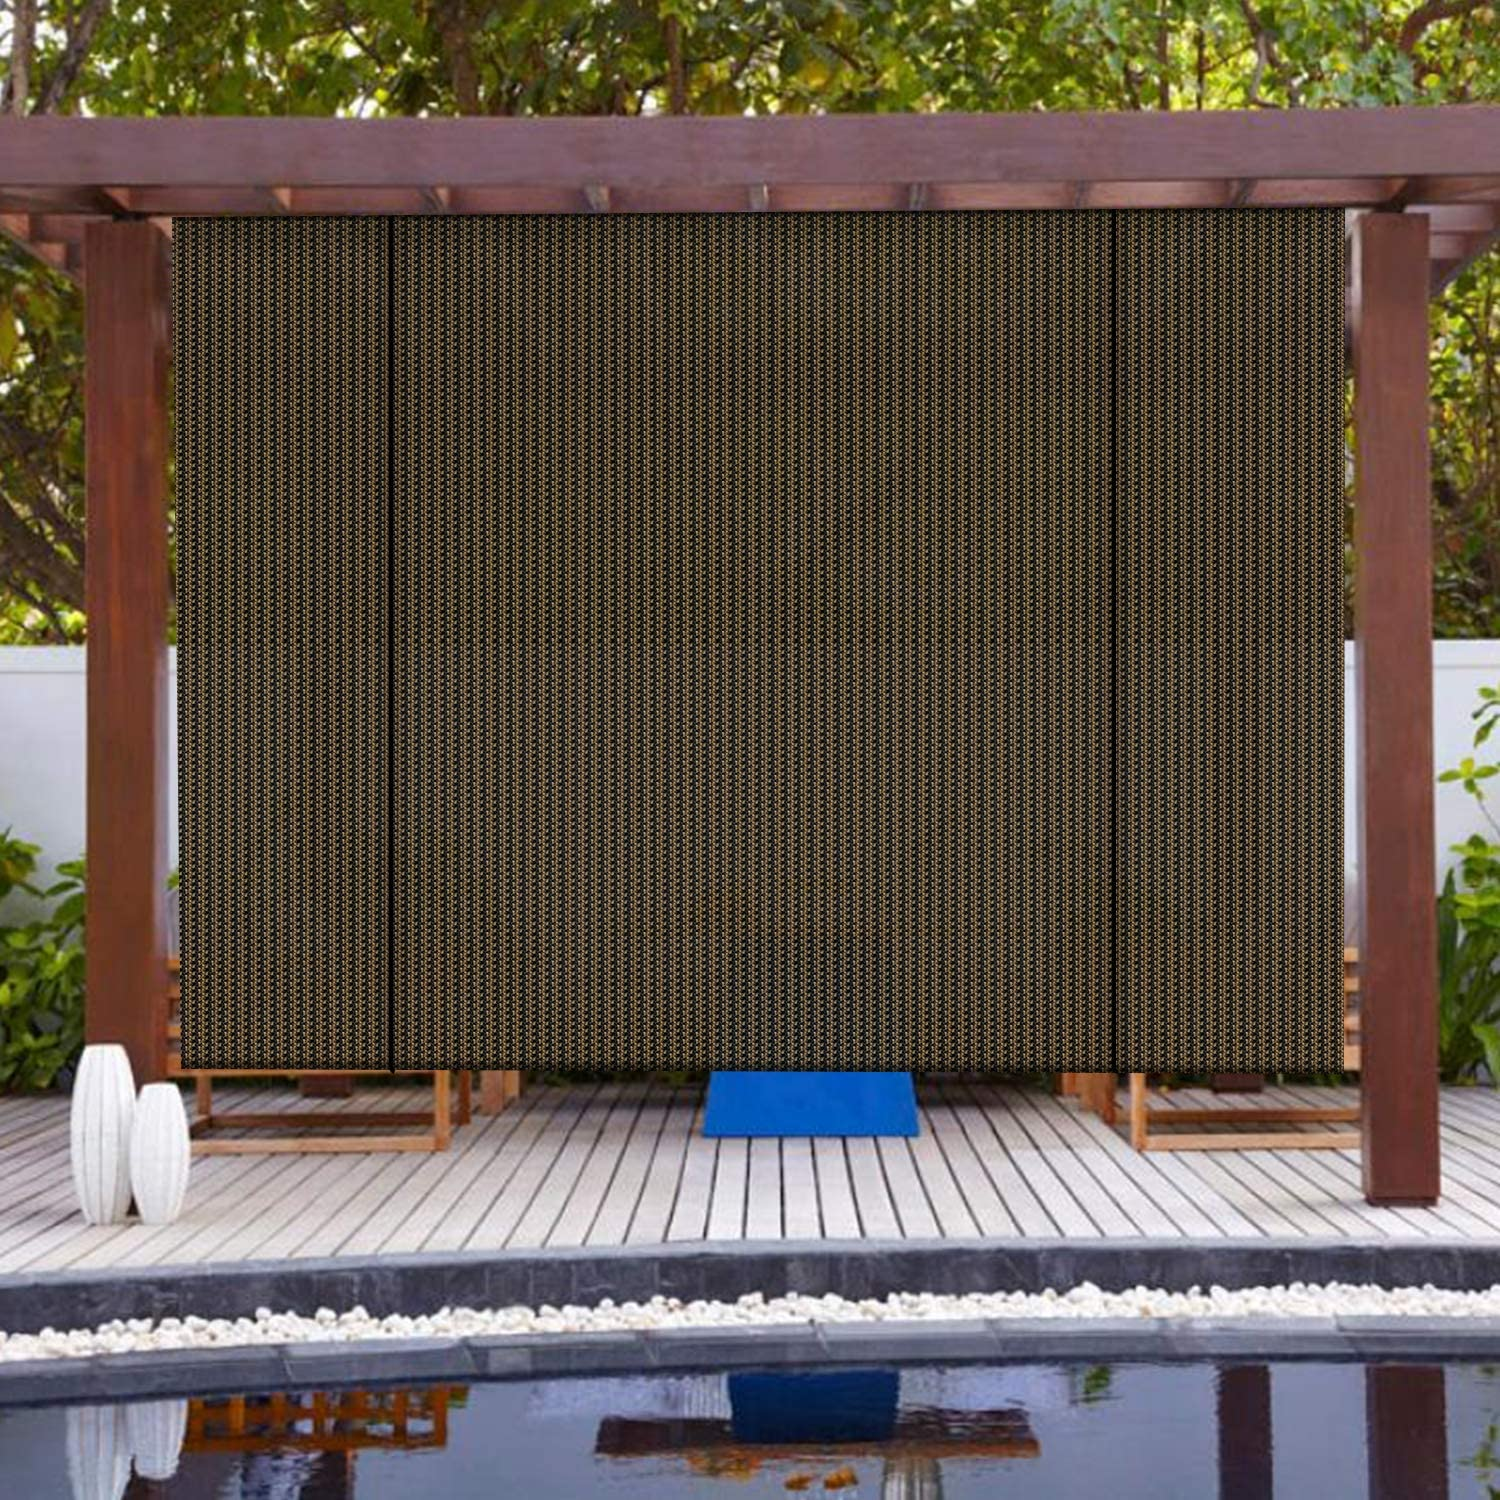 Patio Paradise Roll up Shades Roller Shade 7'Wx6'H